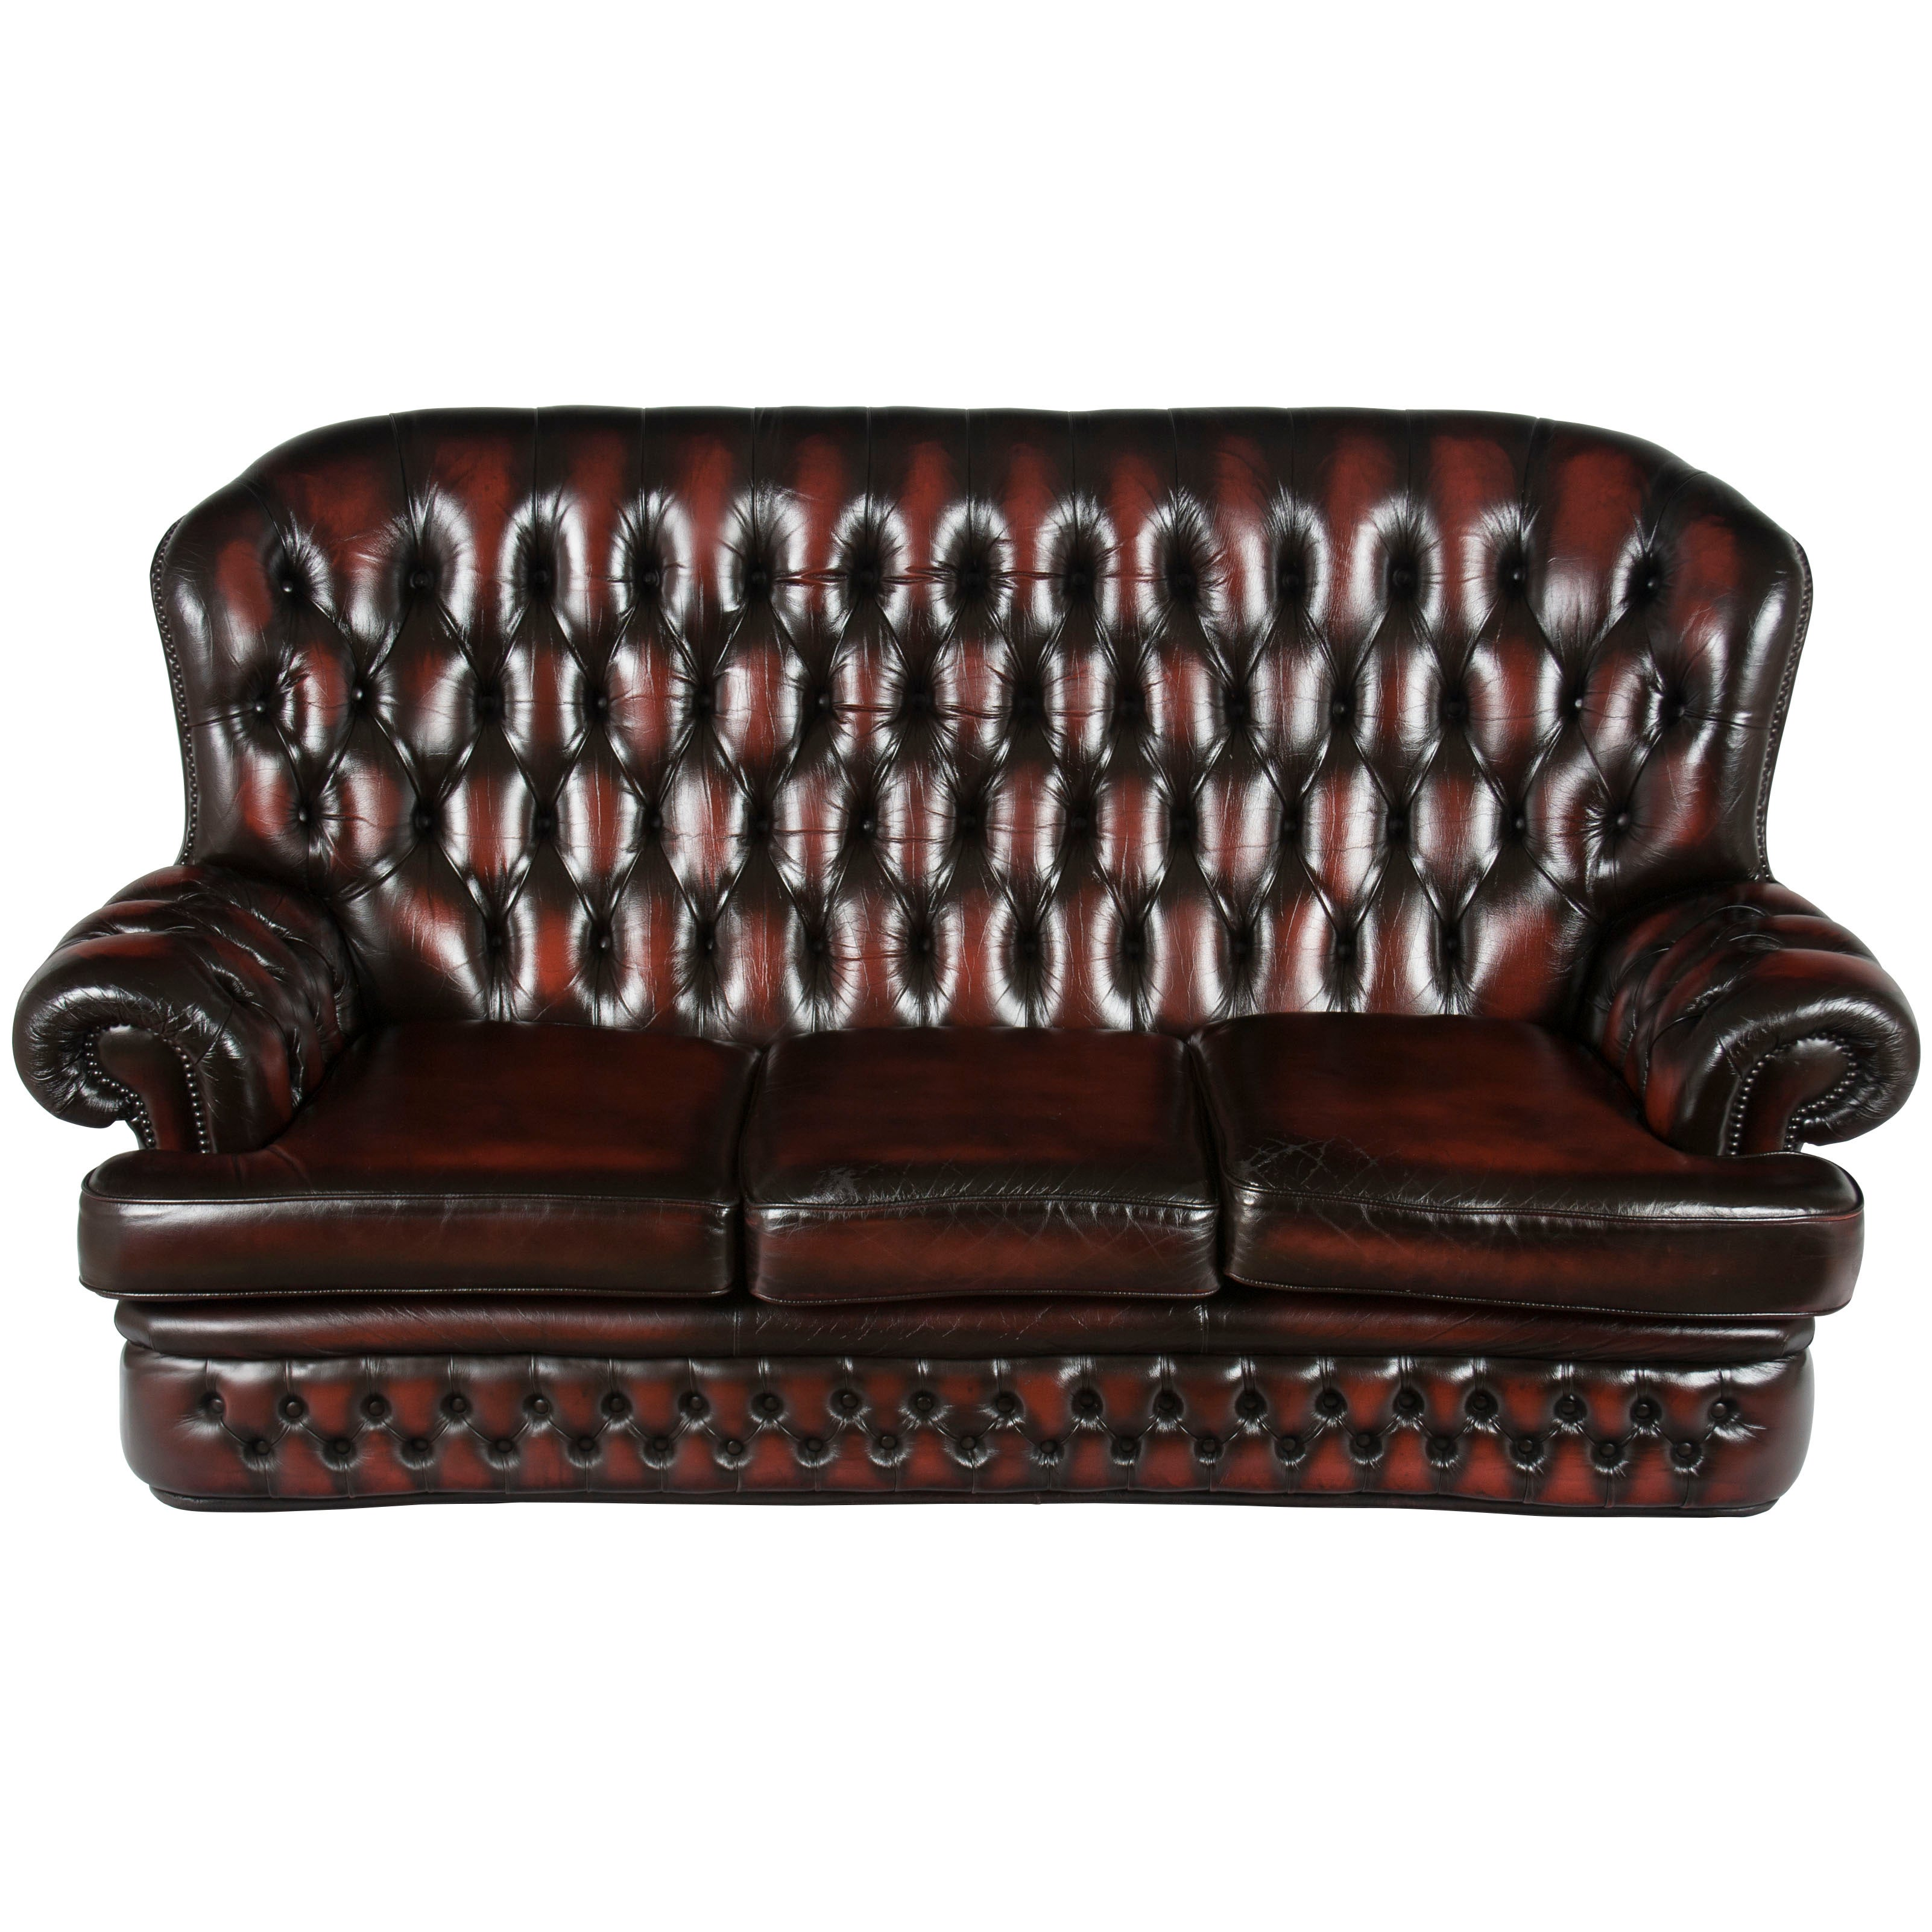 English Tufted Red Leather Tall Back Monks Style Chesterfield Sofa